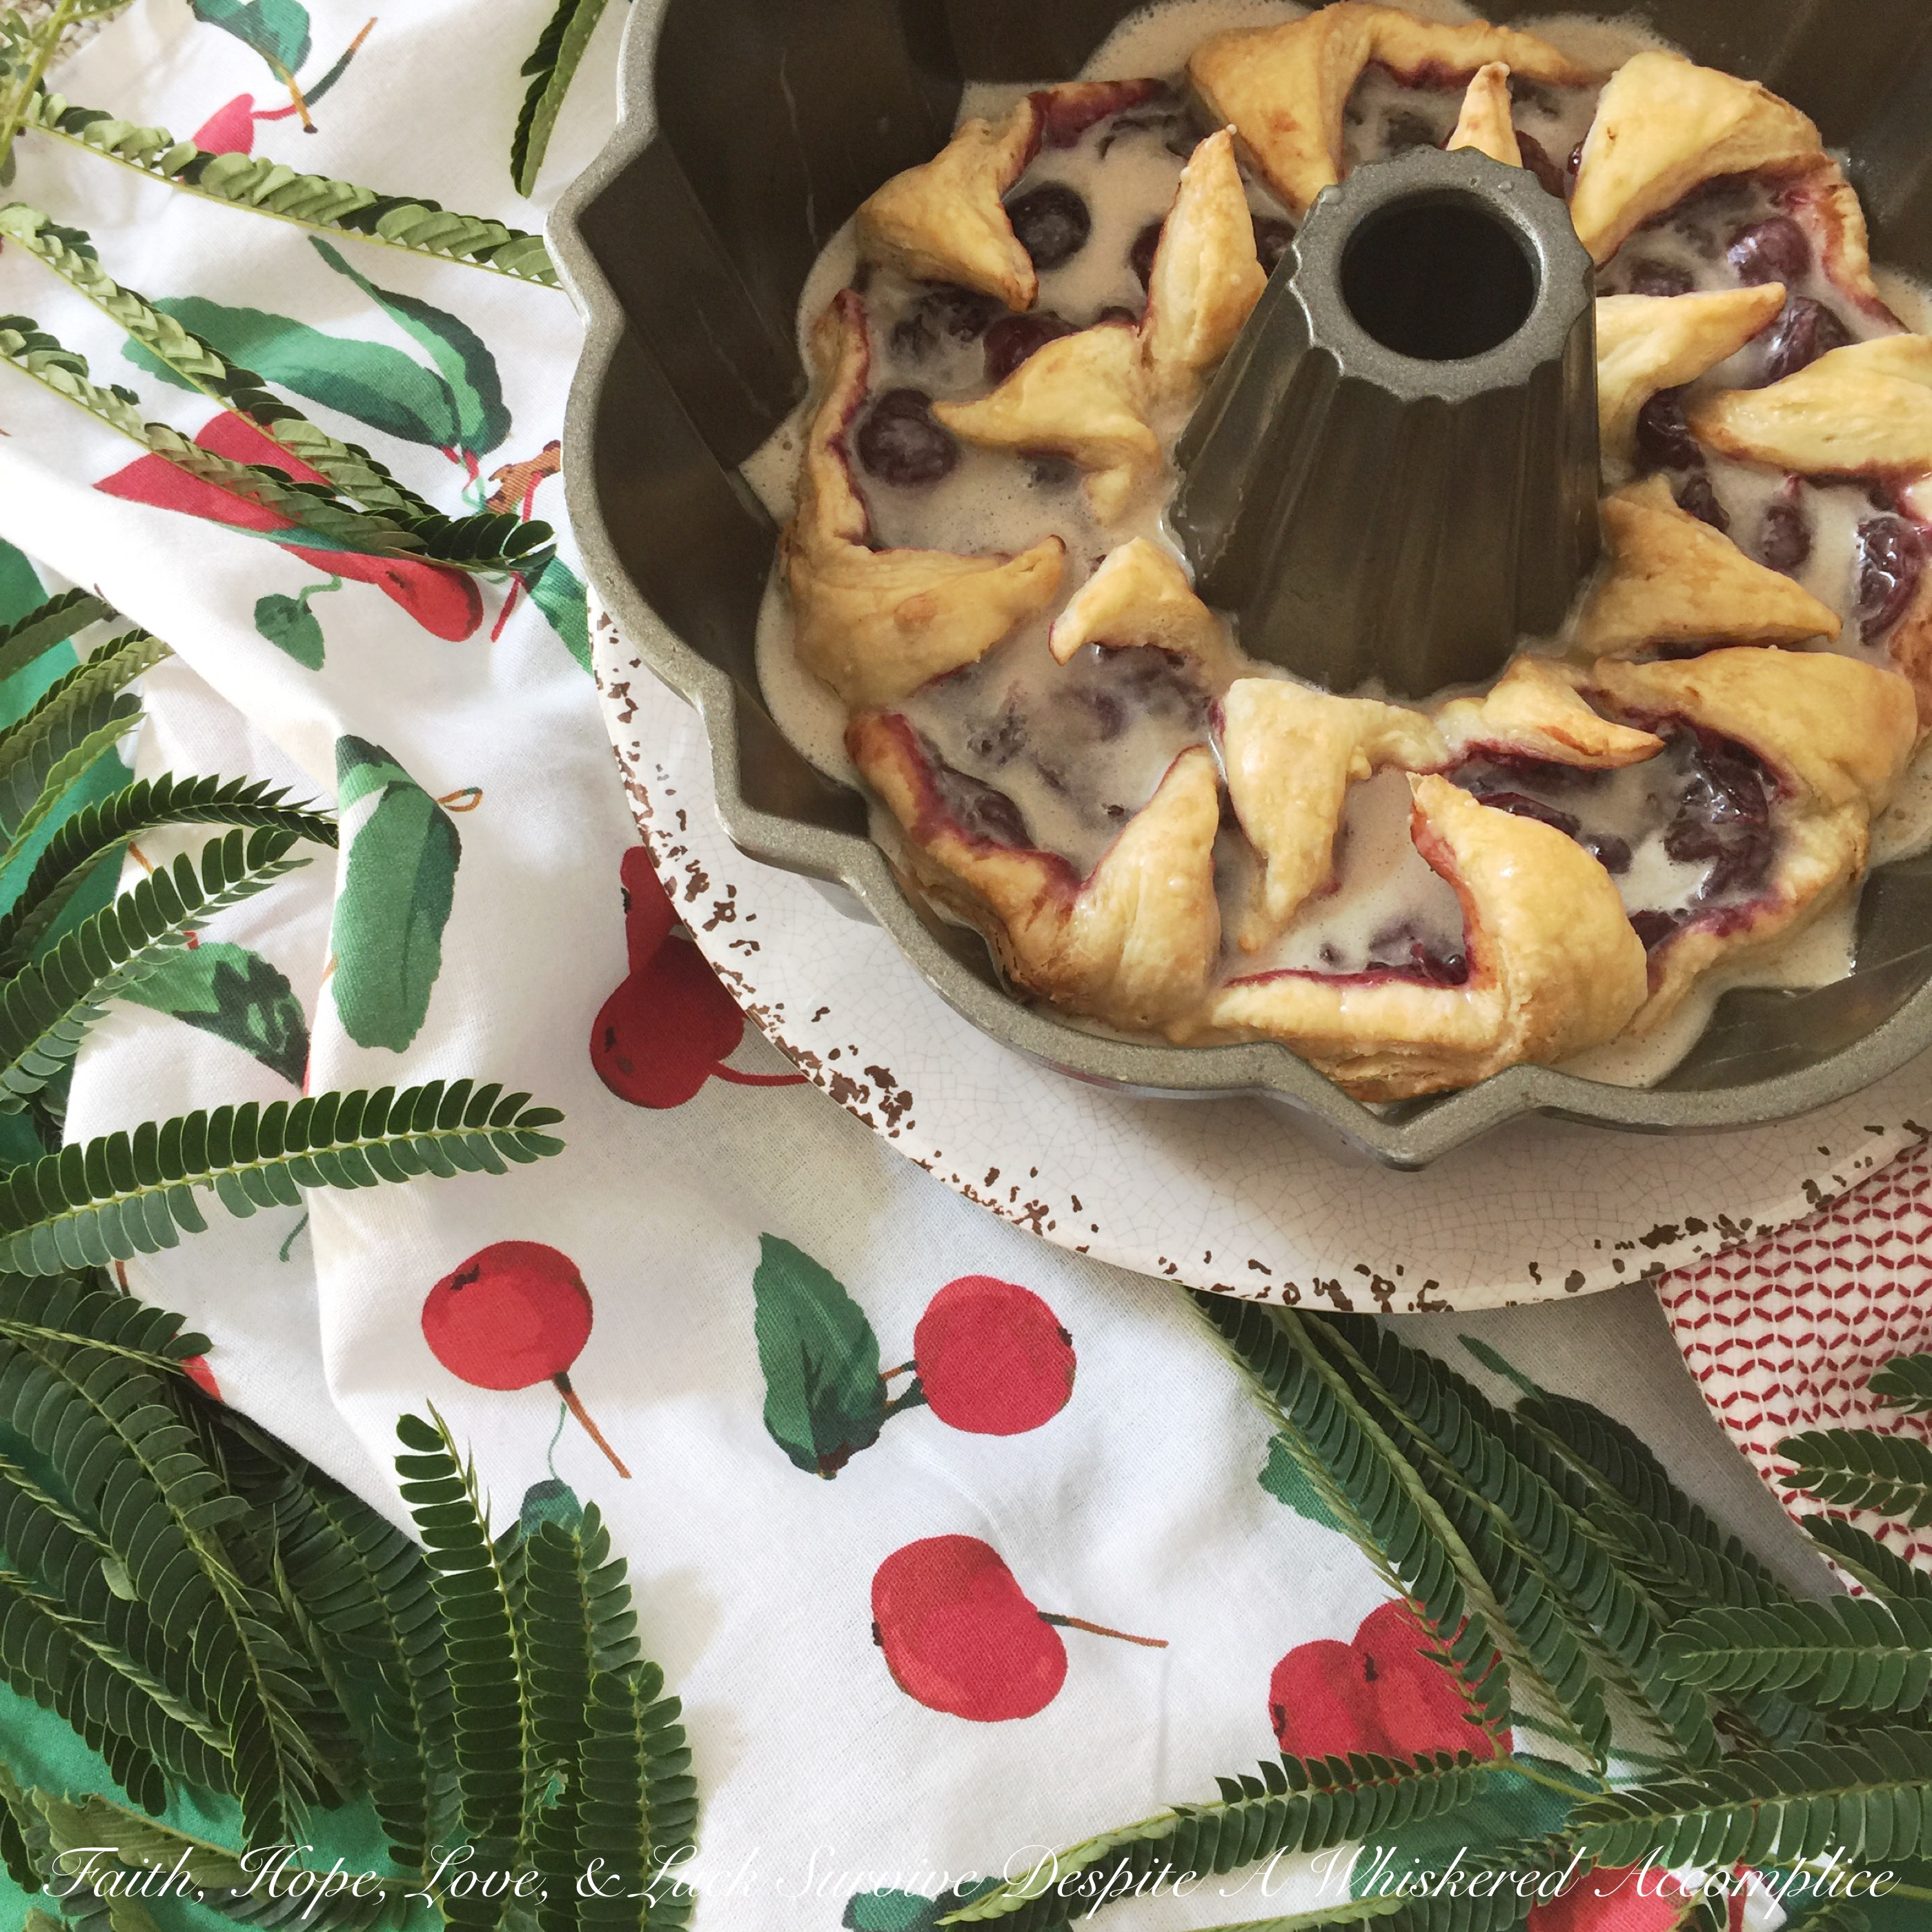 Cherry Bundt Breakfast Danish – #BundtBakers